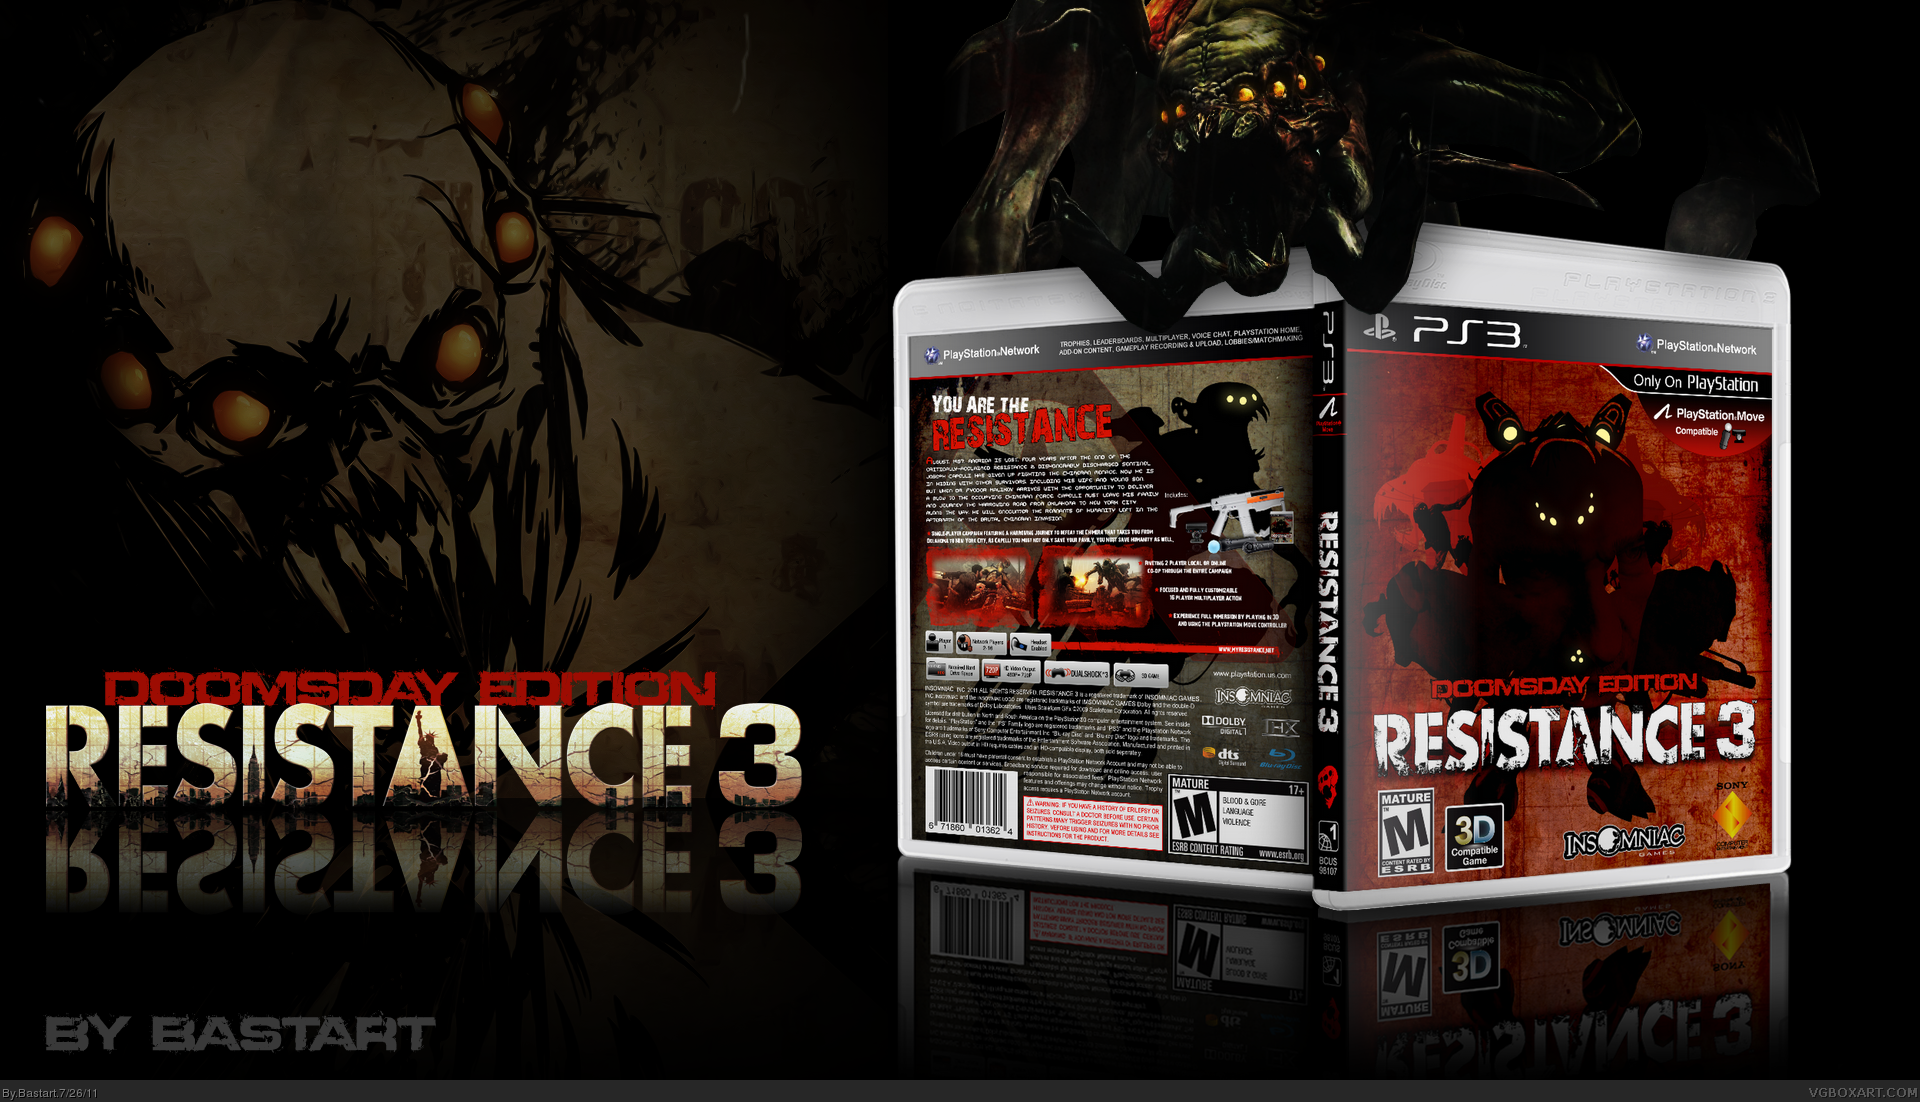 Resistance 3 box cover